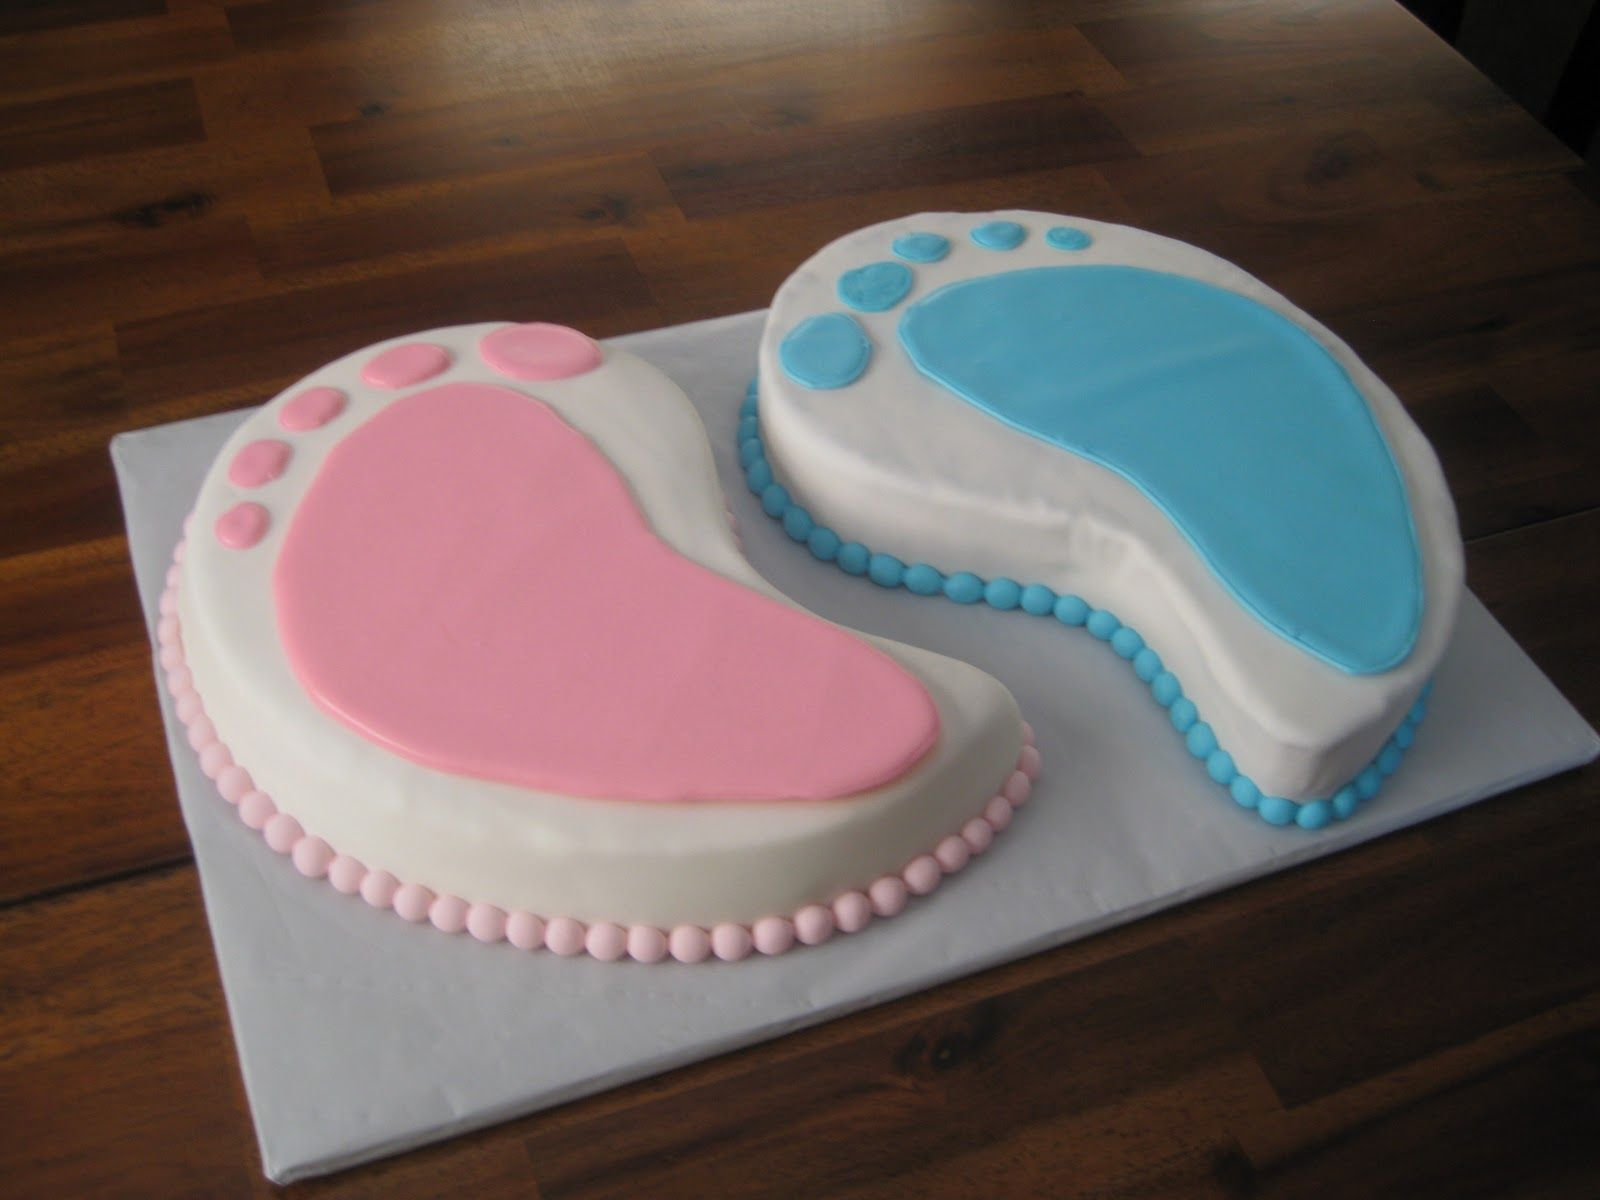 Baby Showers Cake Ideas ~ Ashlynn leigh cakes busy valentineu s day weekend